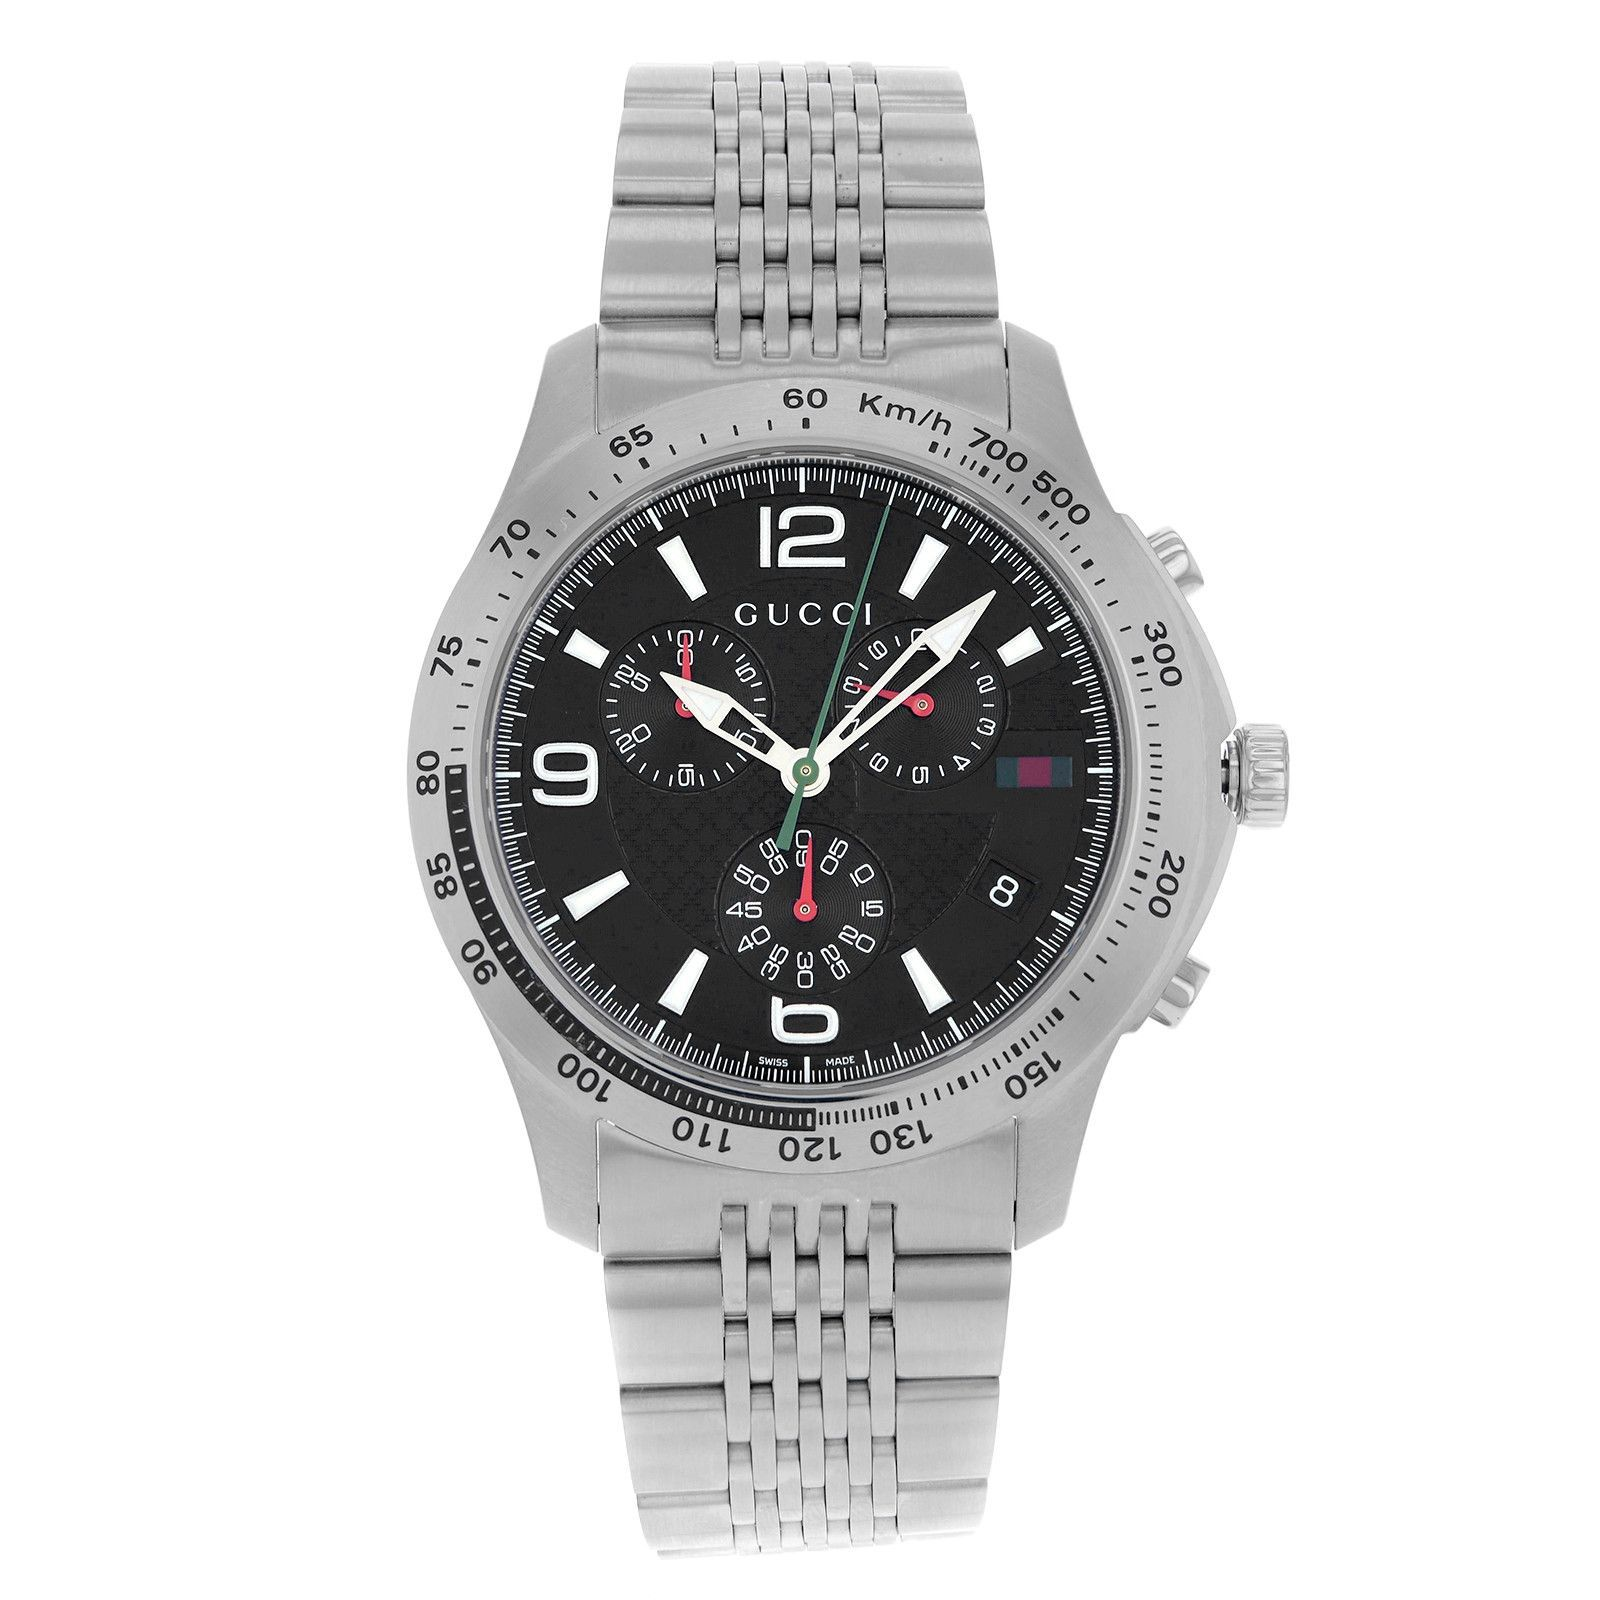 51f6cc85931 Get the lowest price on Gucci 126 Stainless Steel Quartz Men s Watch and  other fabulous designer clothing and accessories! Shop Tradesy now